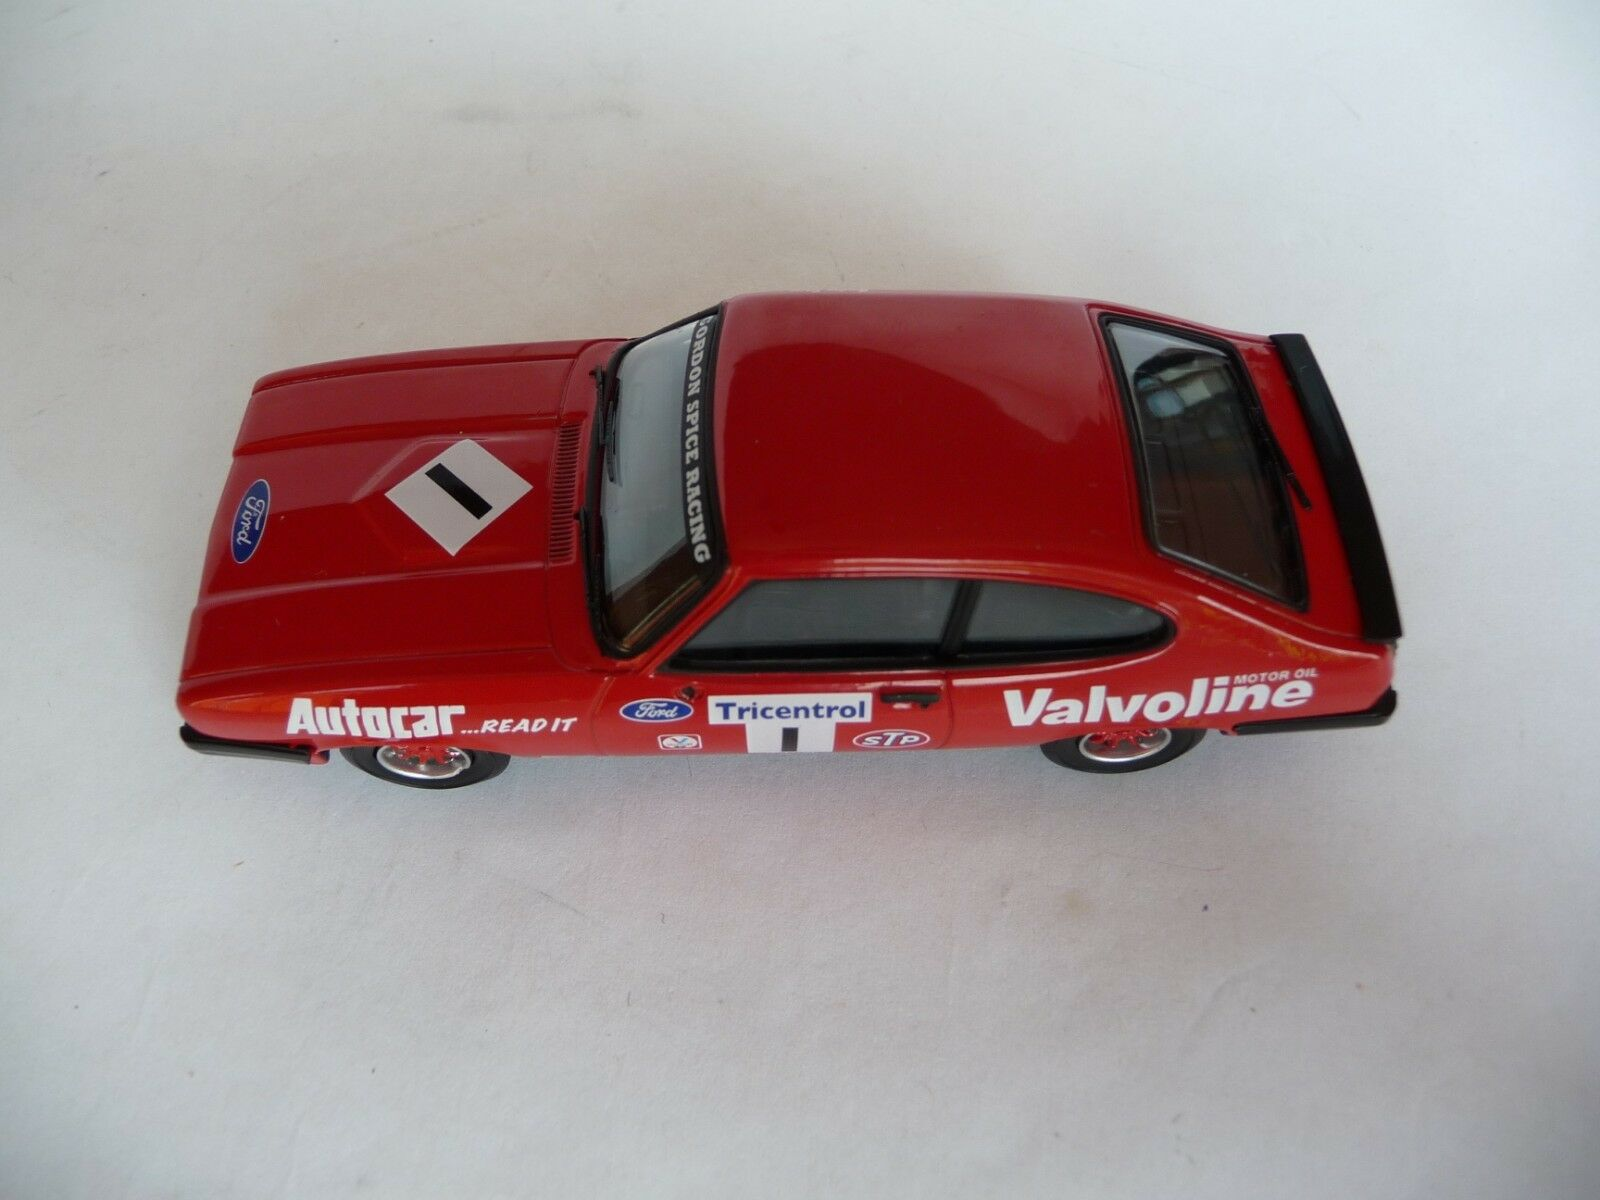 Vanguards 1 43 Ford Capri 1978 Gordon Spice Racing VA10804